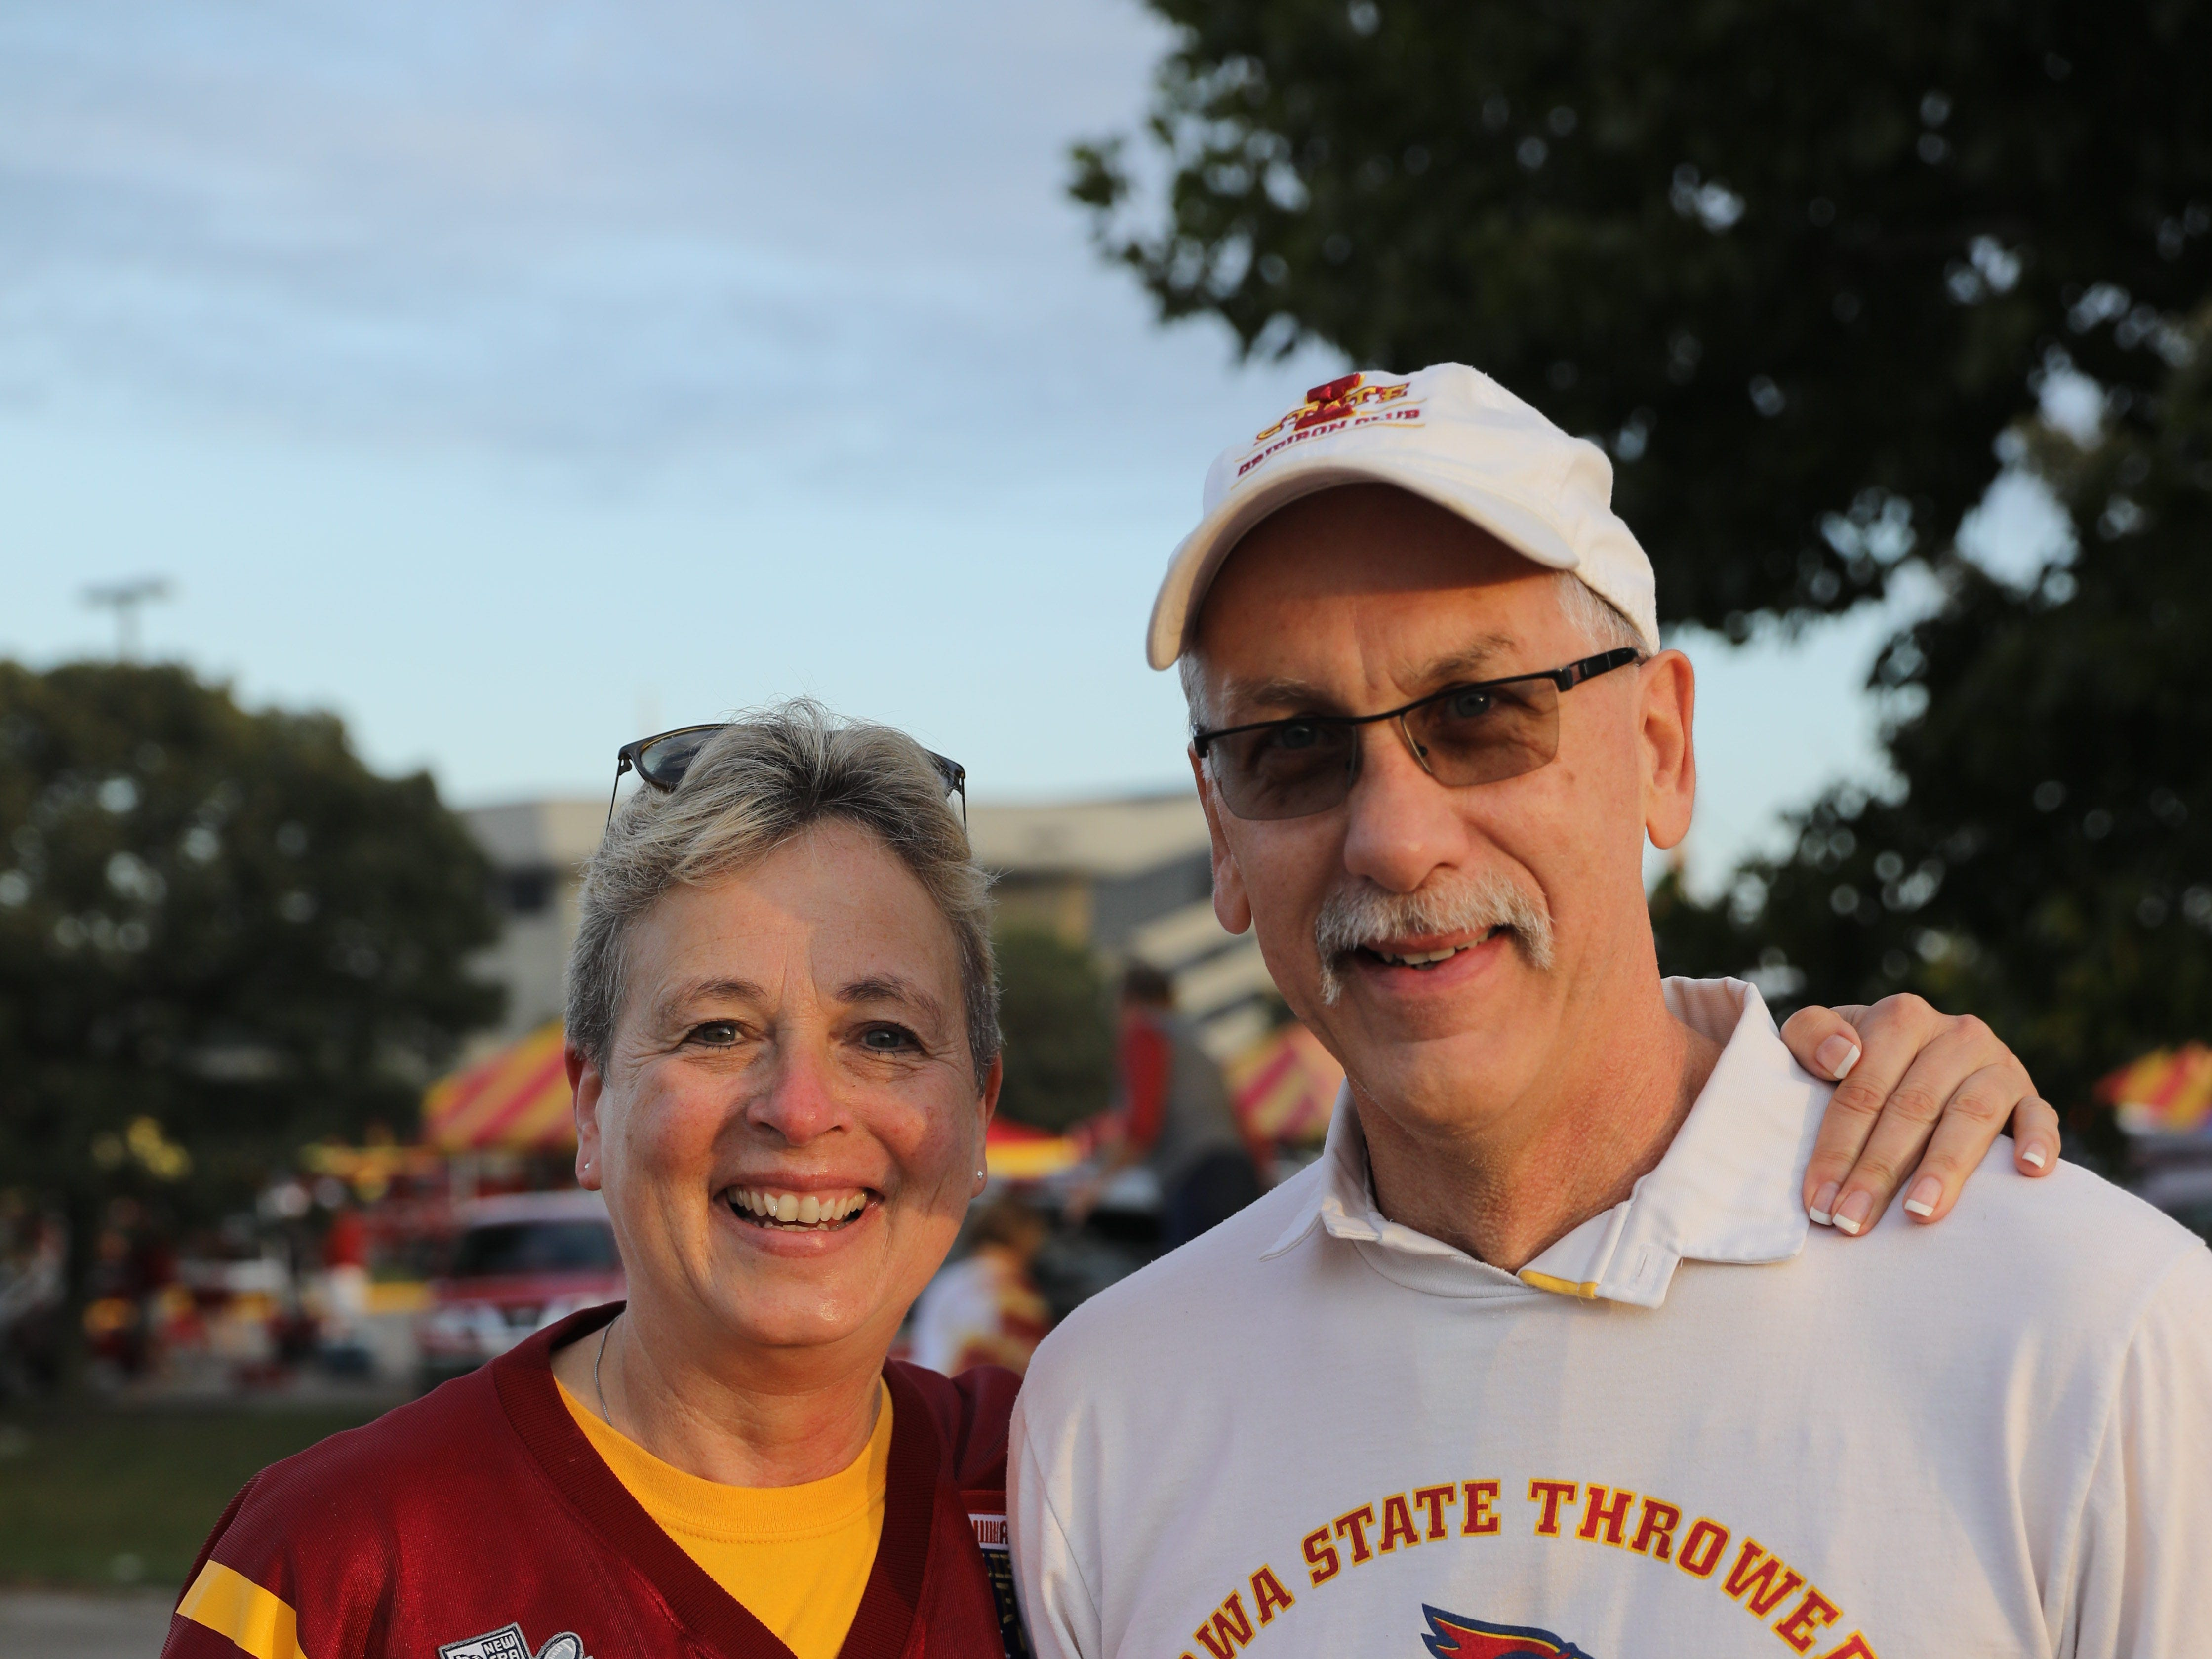 Sal Vanderkamp and Ron Vanderkamp of West Des Moines Saturday, Sept. 15, 2018, before the Iowa State football game against Oklahoma in Ames.